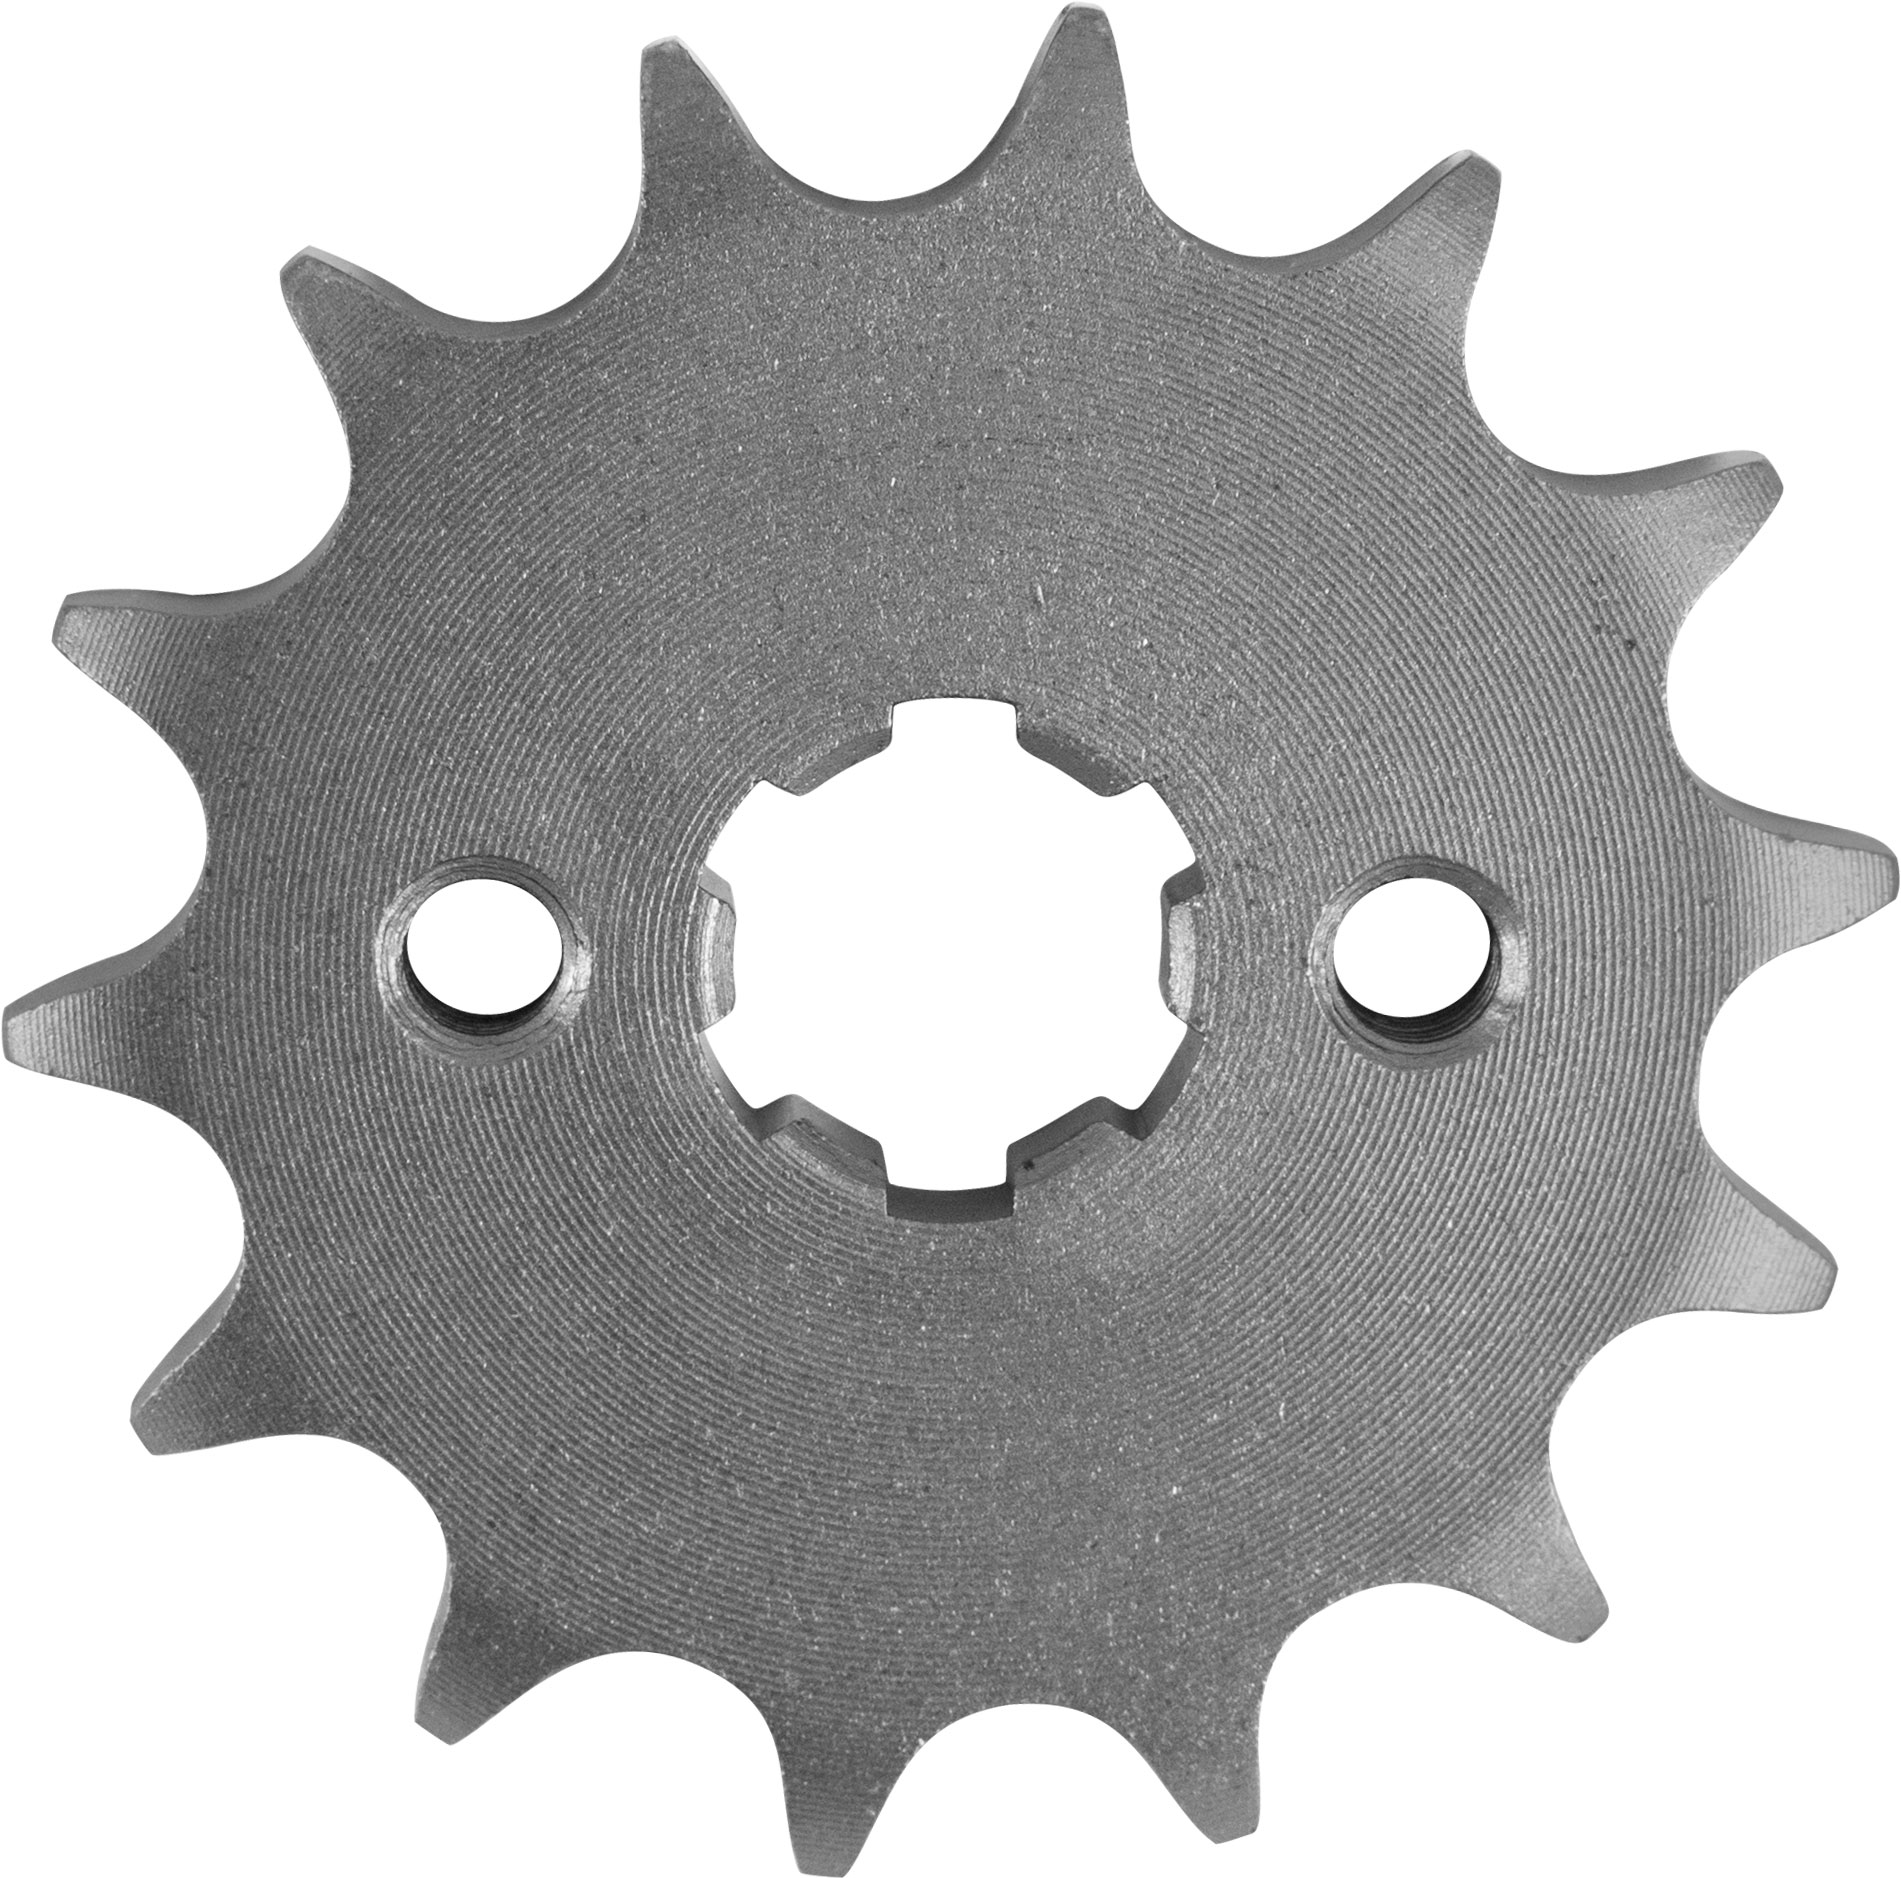 256-14 Front Sprocket Suzuki FL125 Address 07-09 (Each)